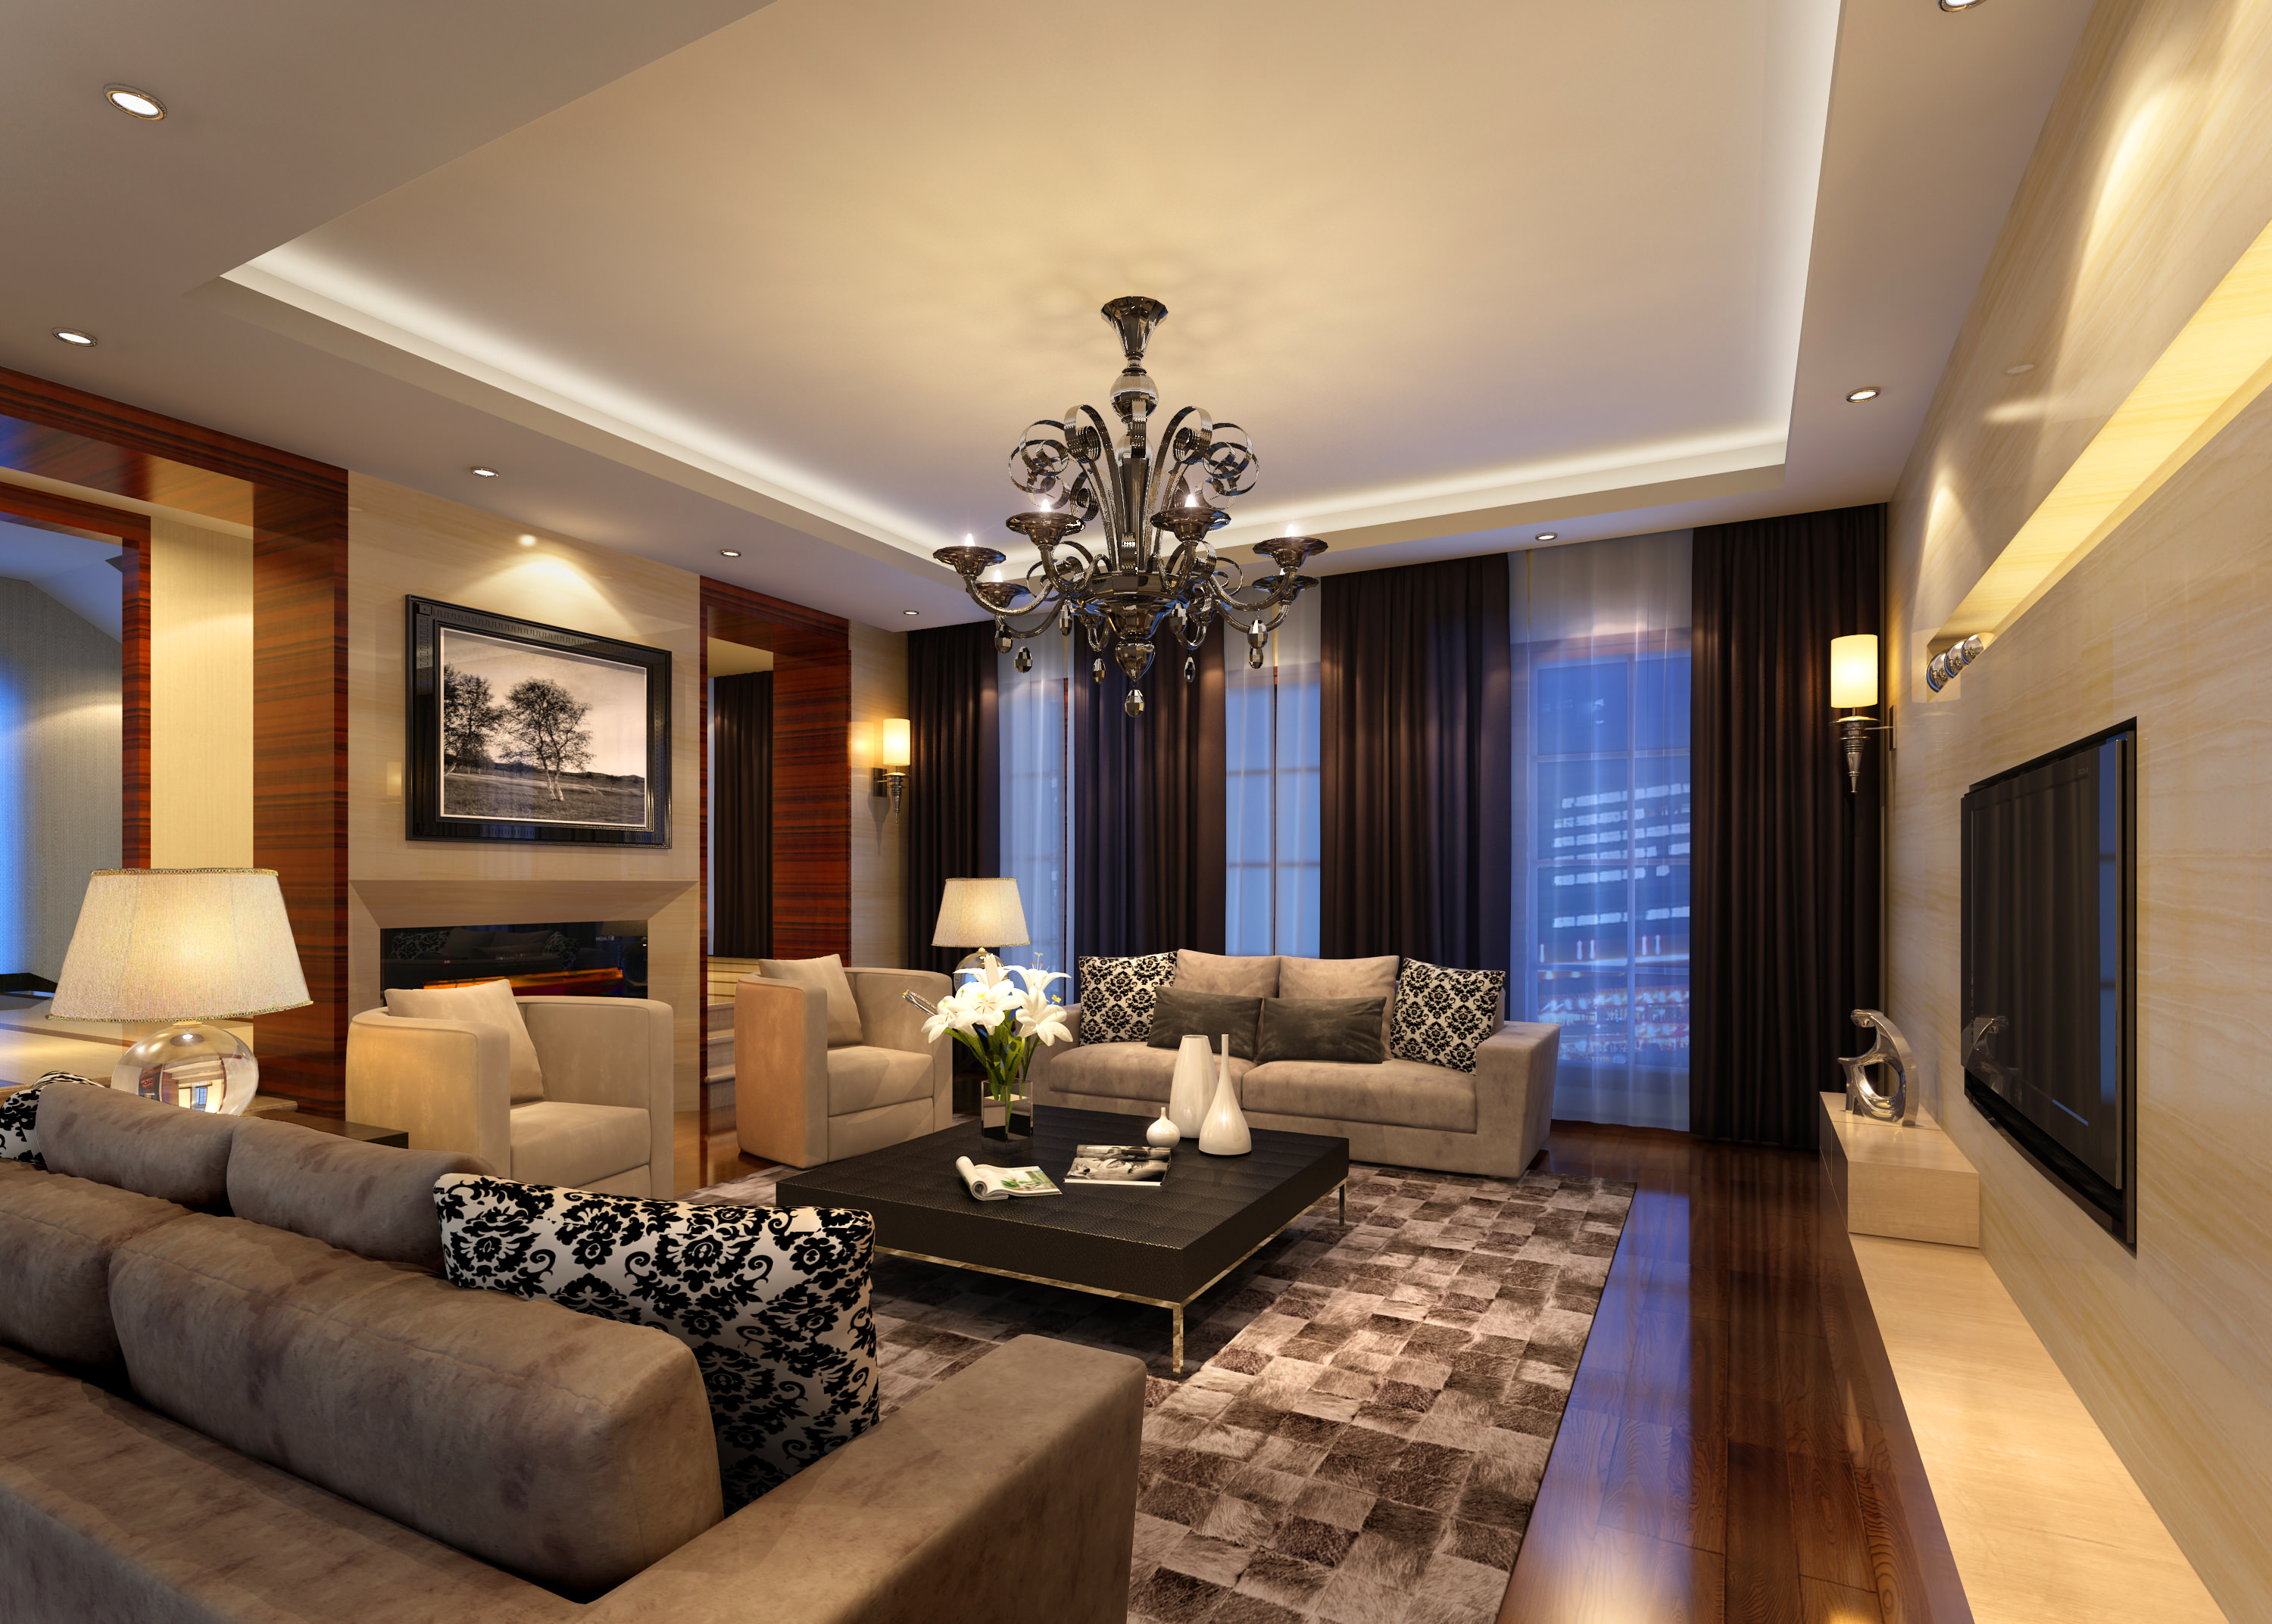 Collection living room and bedroom collection 3d model max for Model home interior design firms